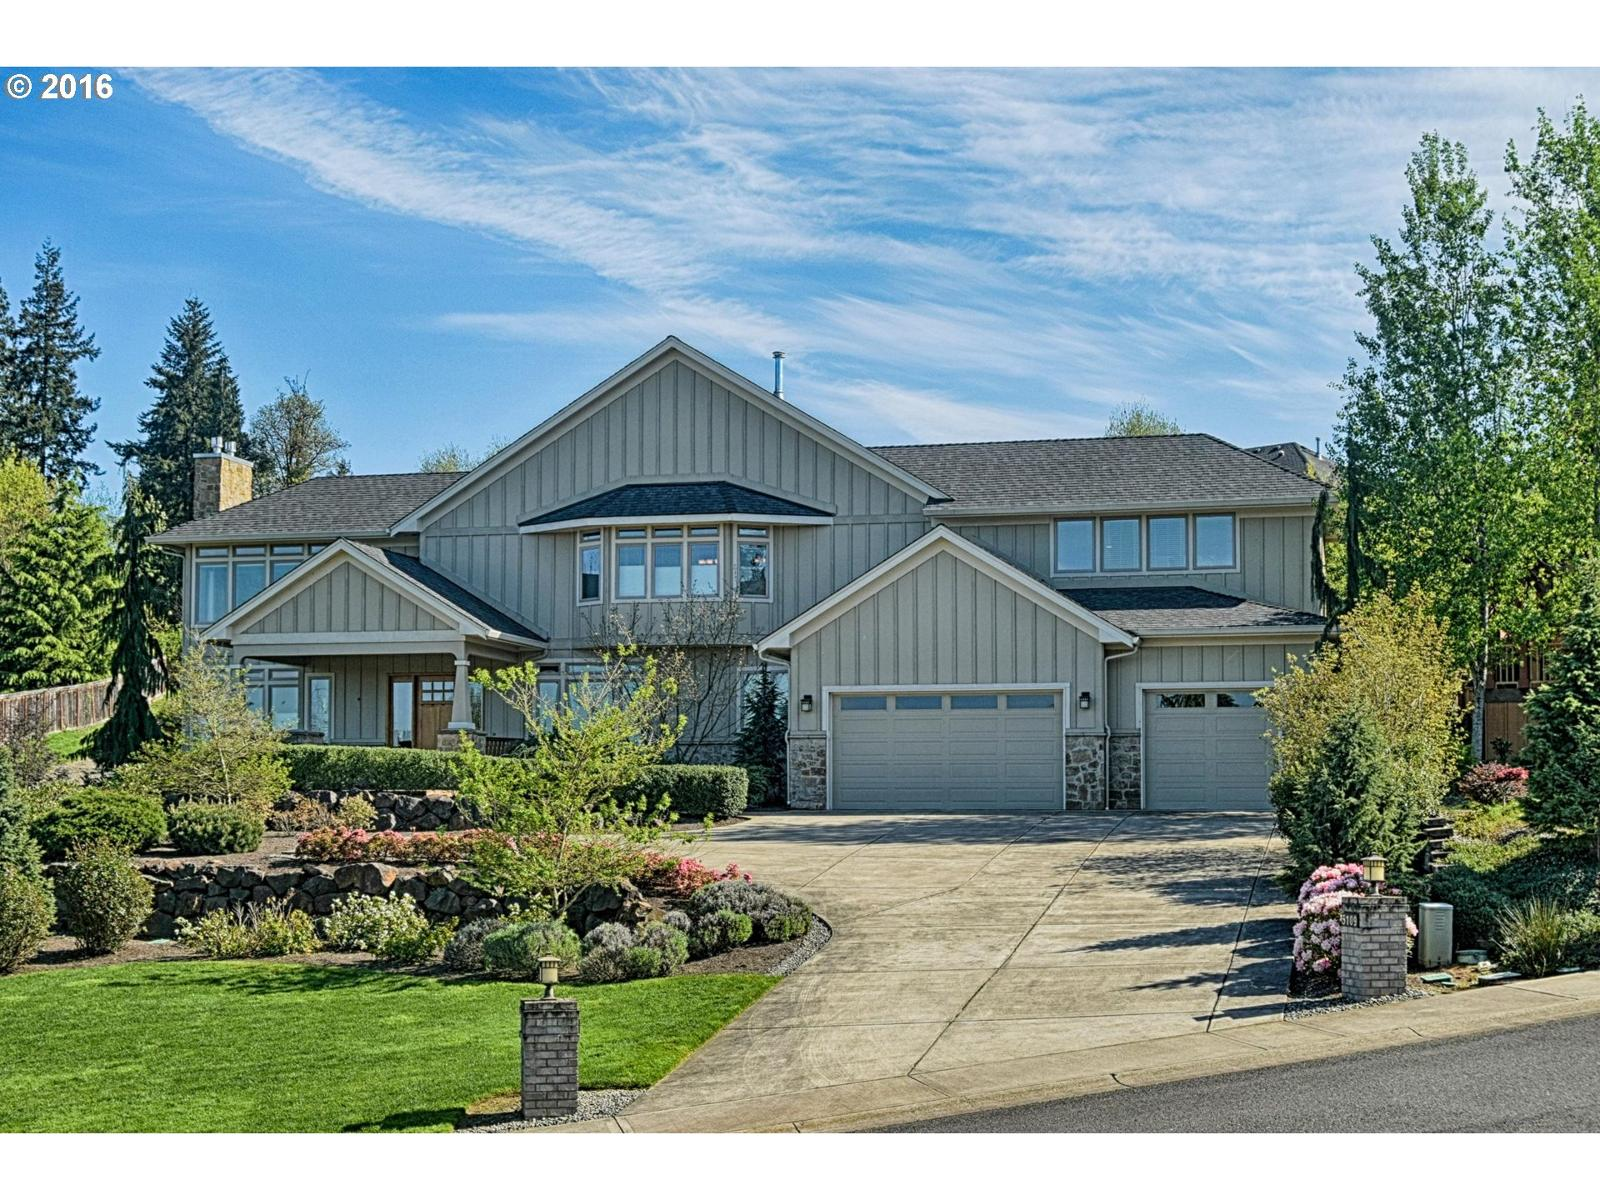 5109 Nw 143rd St Vancouver Wa Mls 16074073 Ziprealty